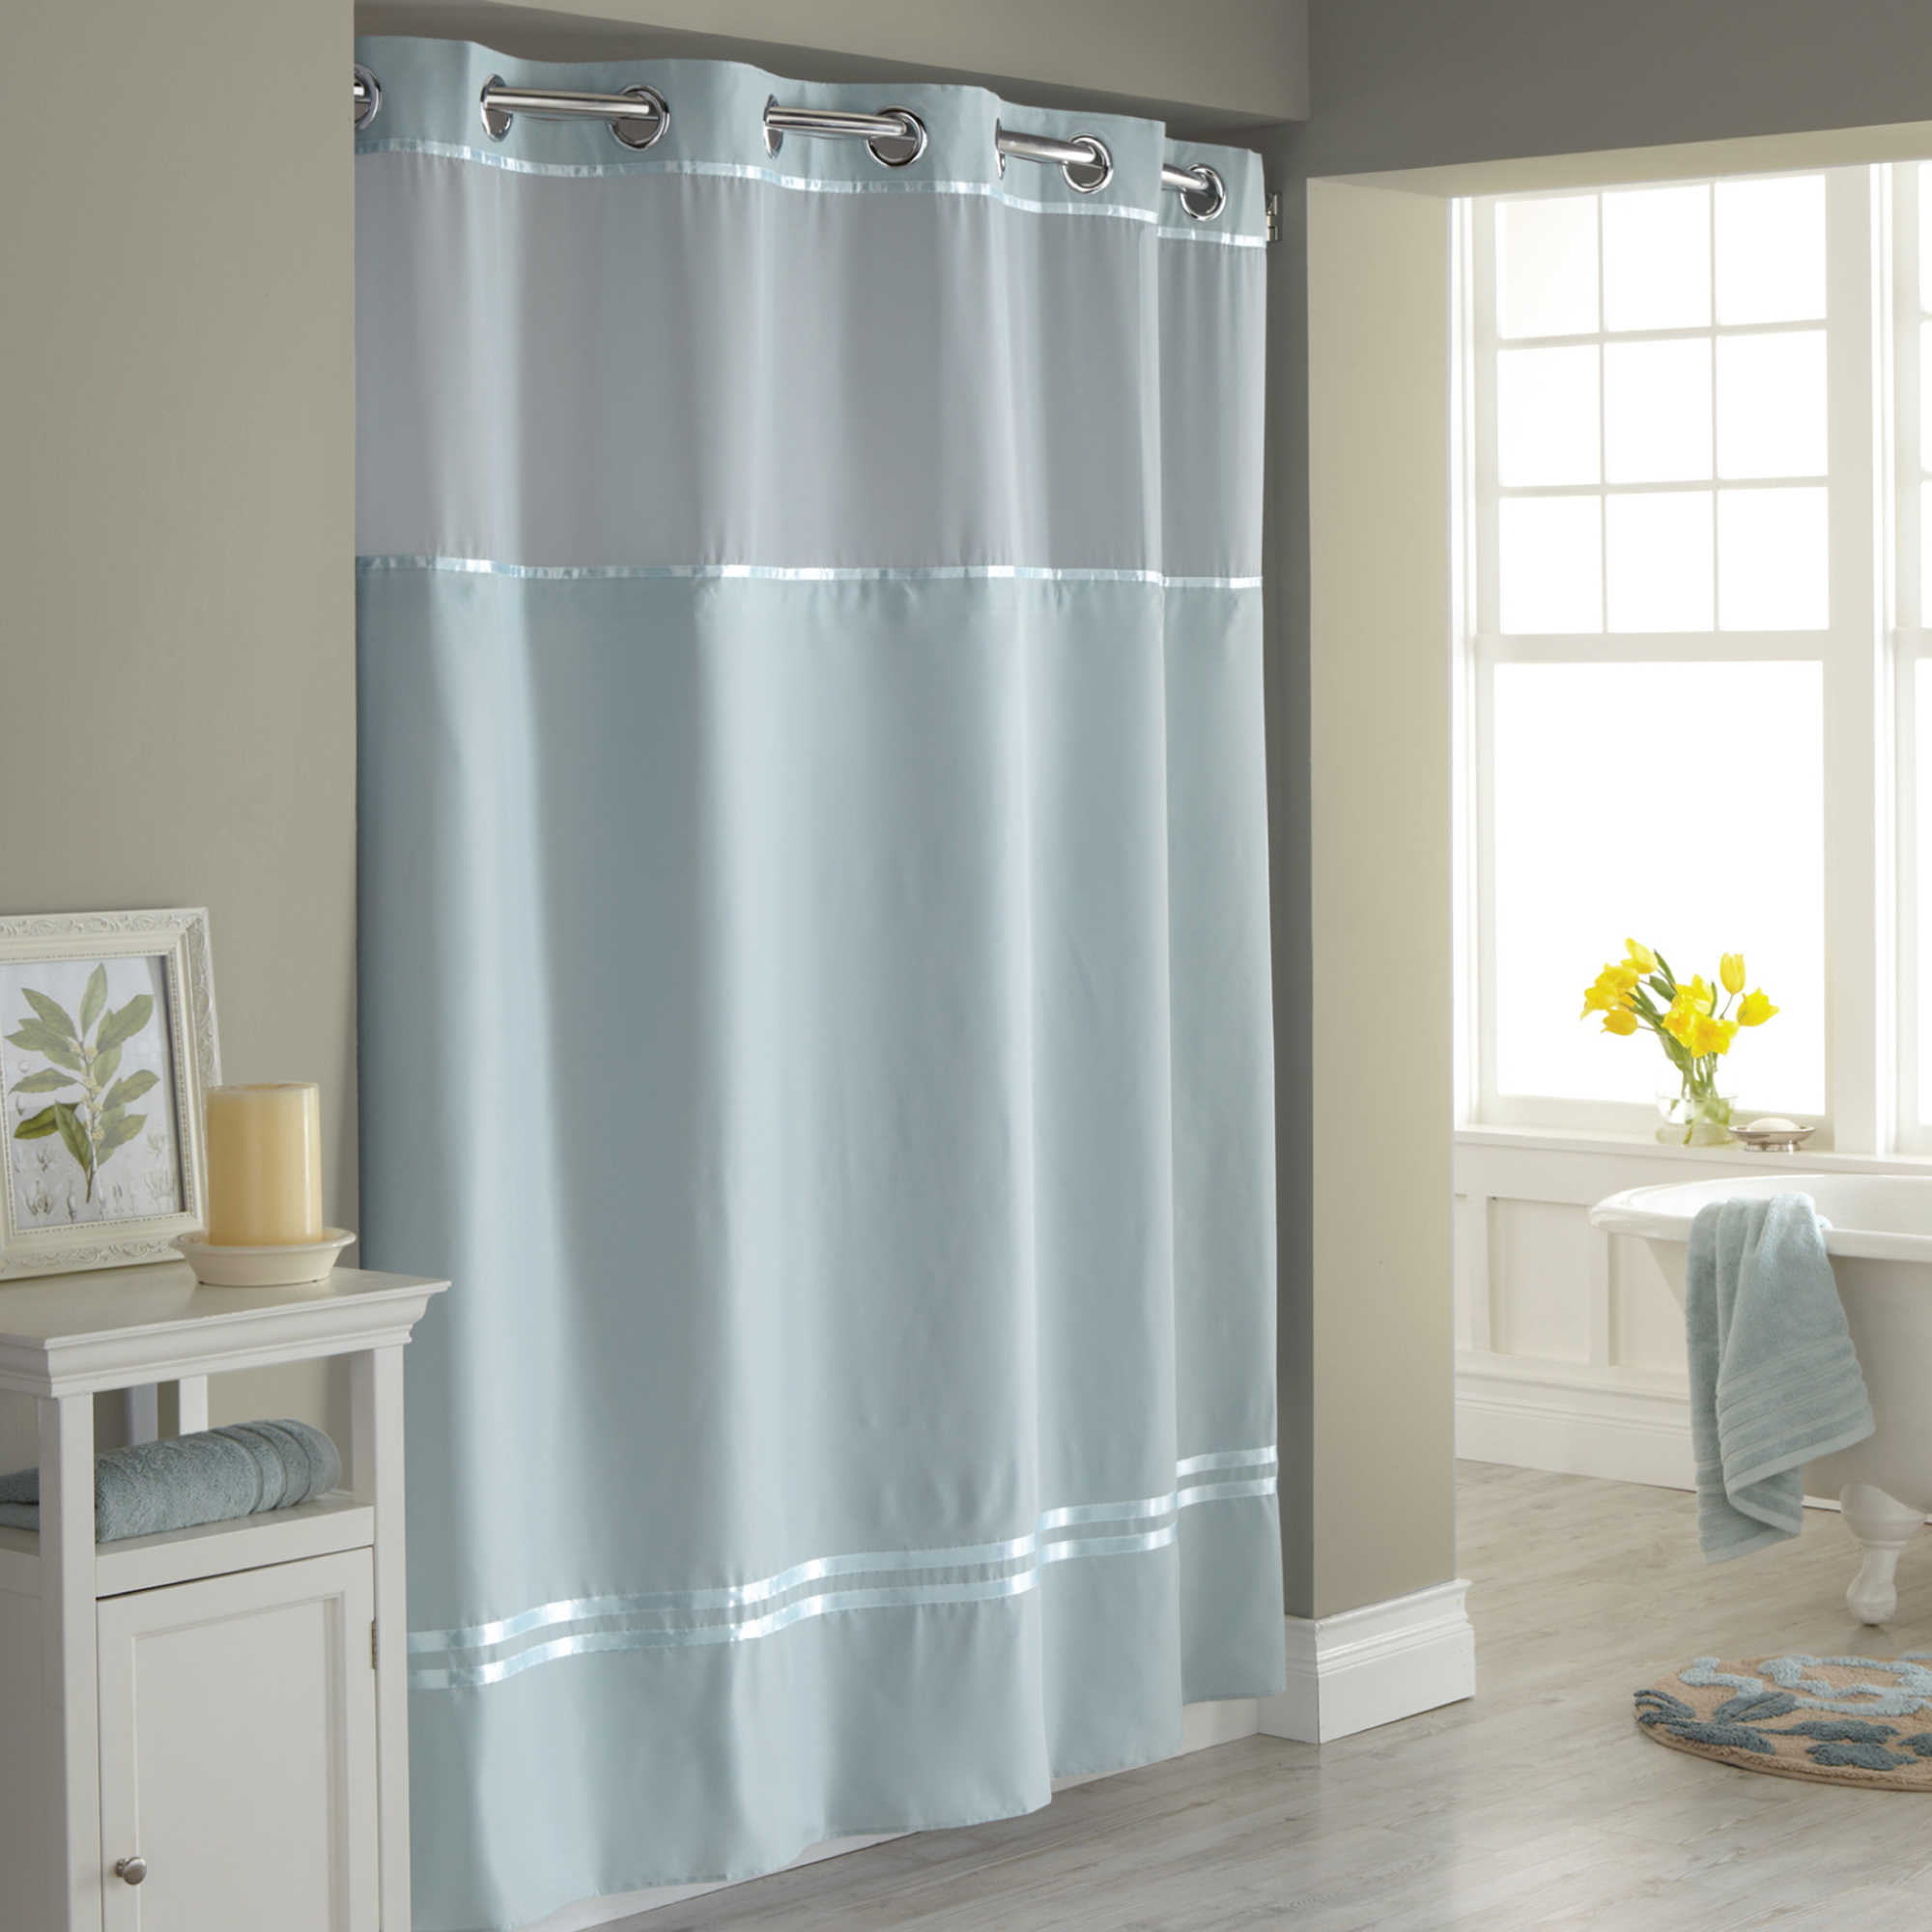 shower long s extra curtain size online curtains liners insulated length rod custom blackout